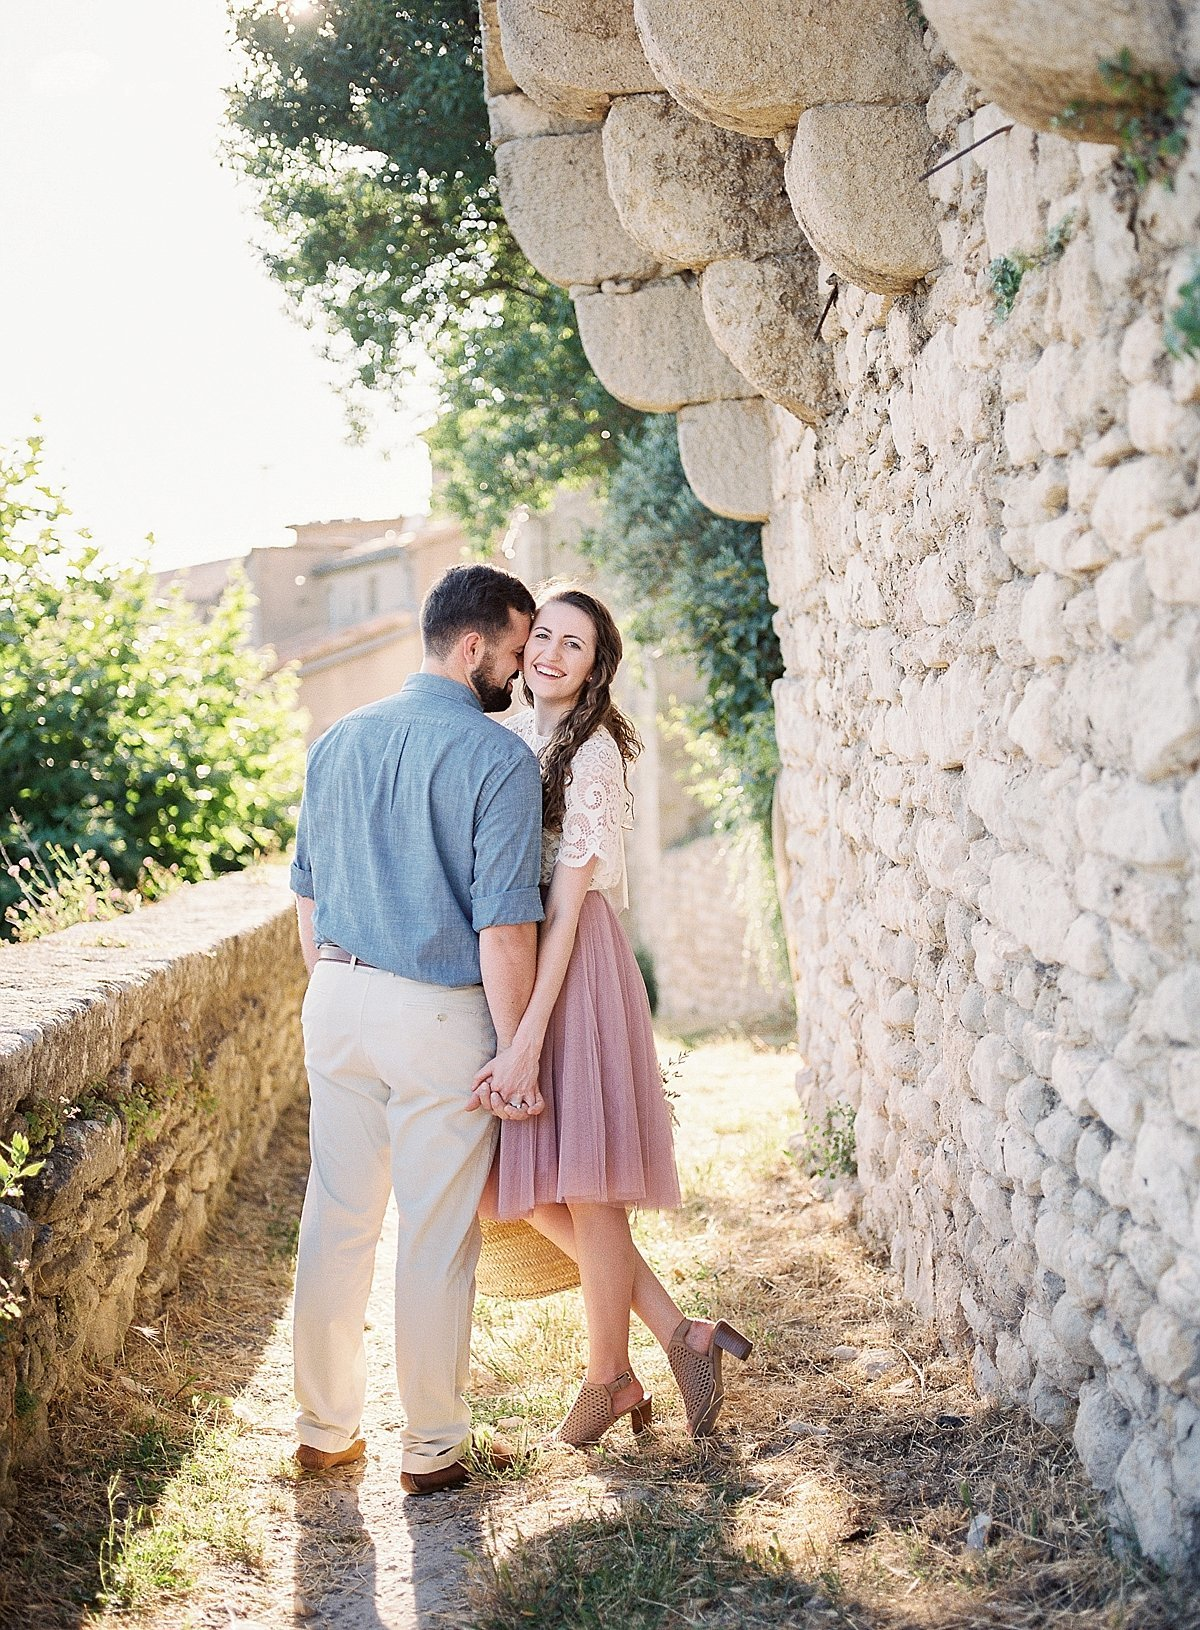 France-lavender-anniversary-session-alicia-yarrish-photography-22-2